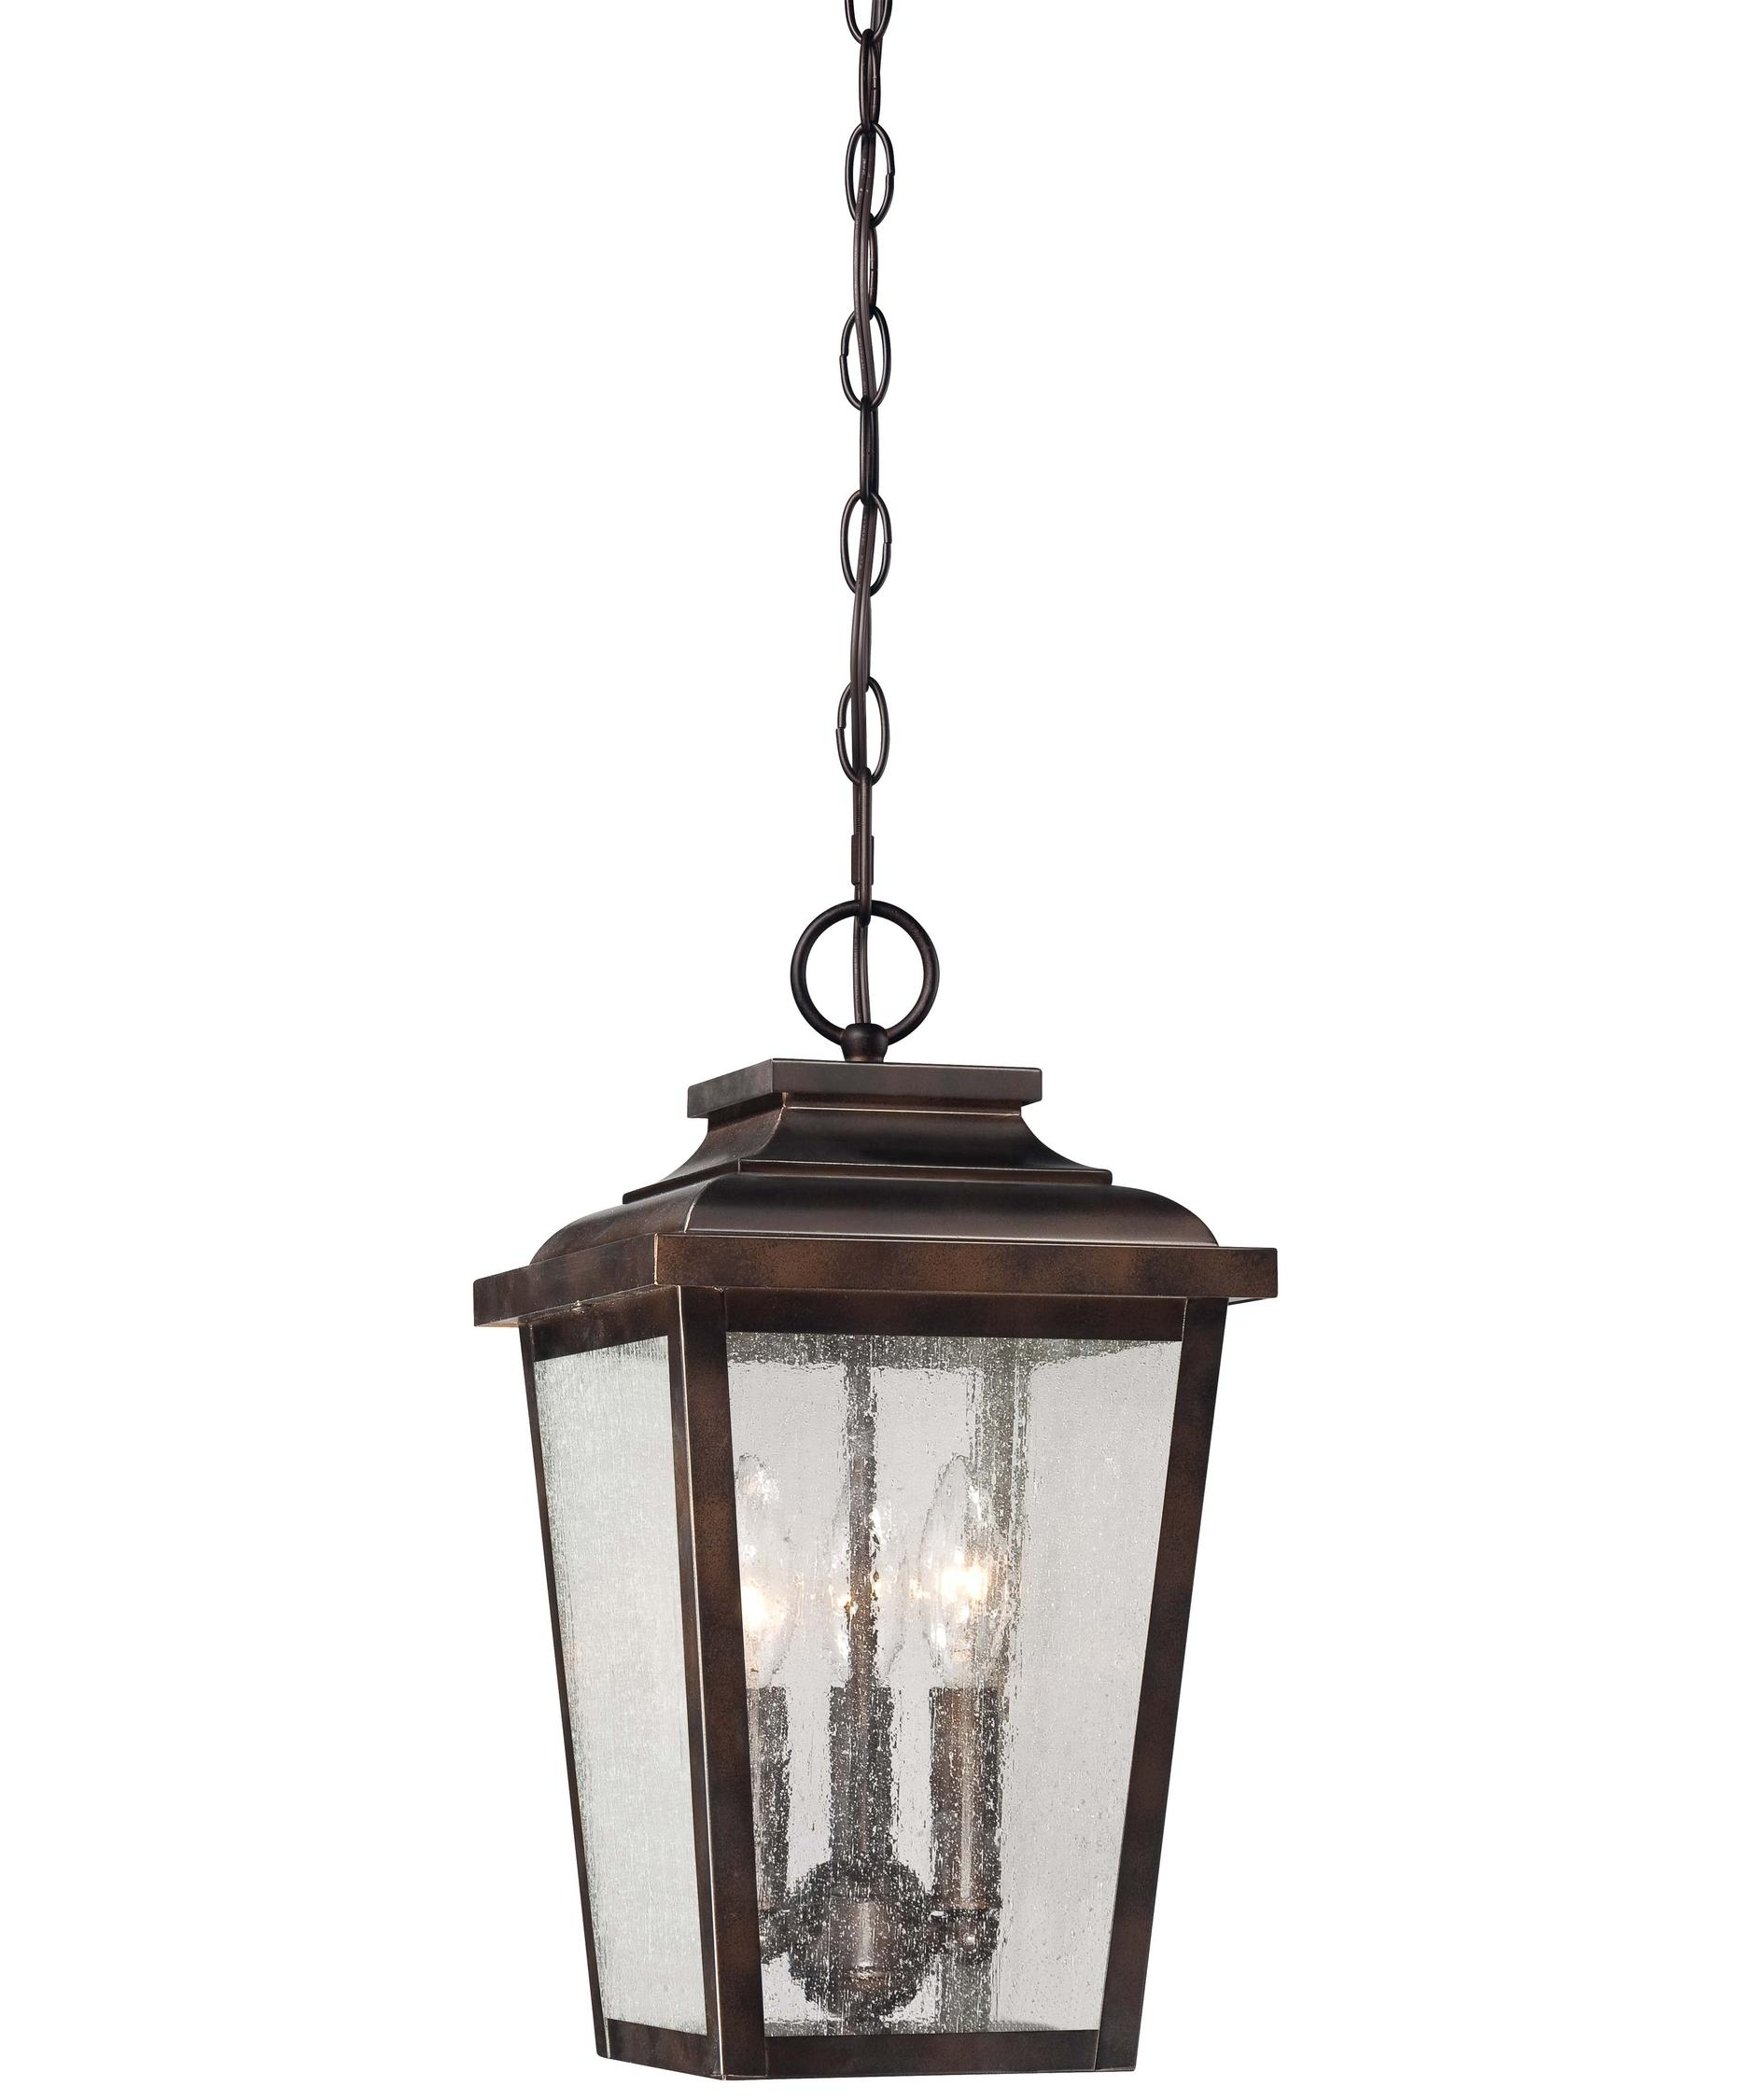 Minka Lavery 72174 Irvington Manor 9 Inch Wide 3 Light Outdoor With Regard To Most Up To Date Bronze Outdoor Hanging Lights (View 10 of 20)